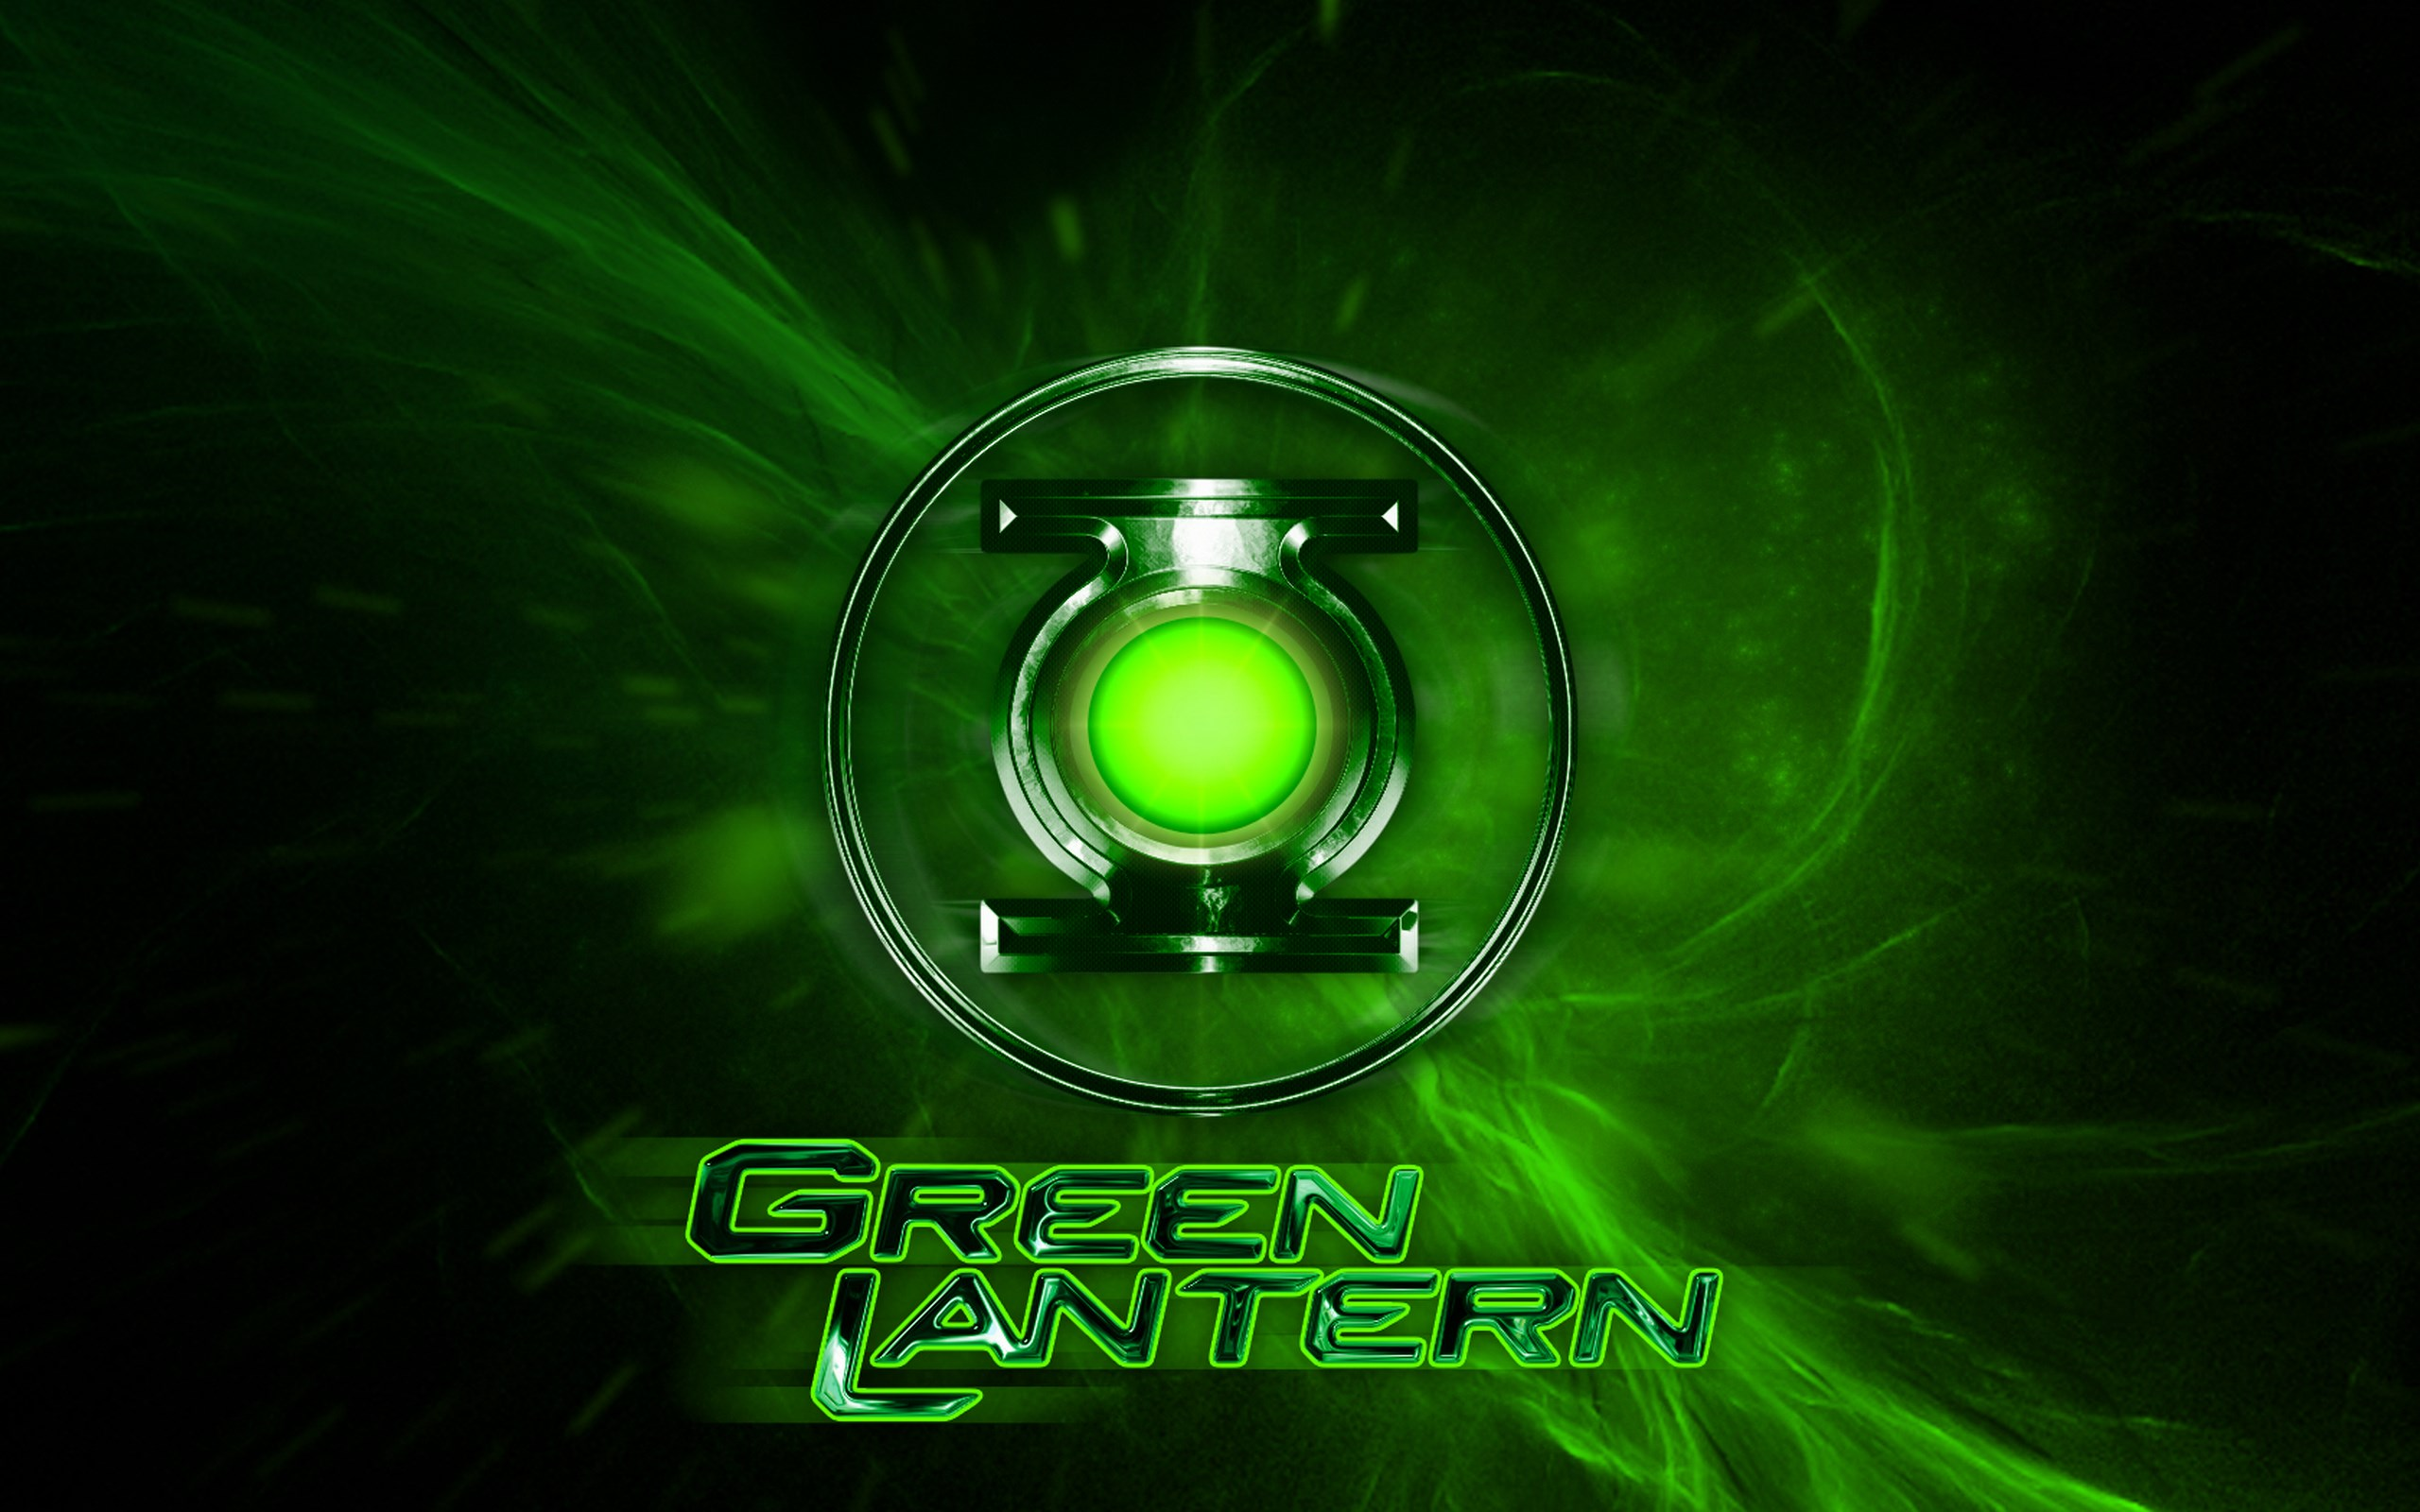 Green Lantern Wallpapers   Full HD wallpaper search 2560x1600